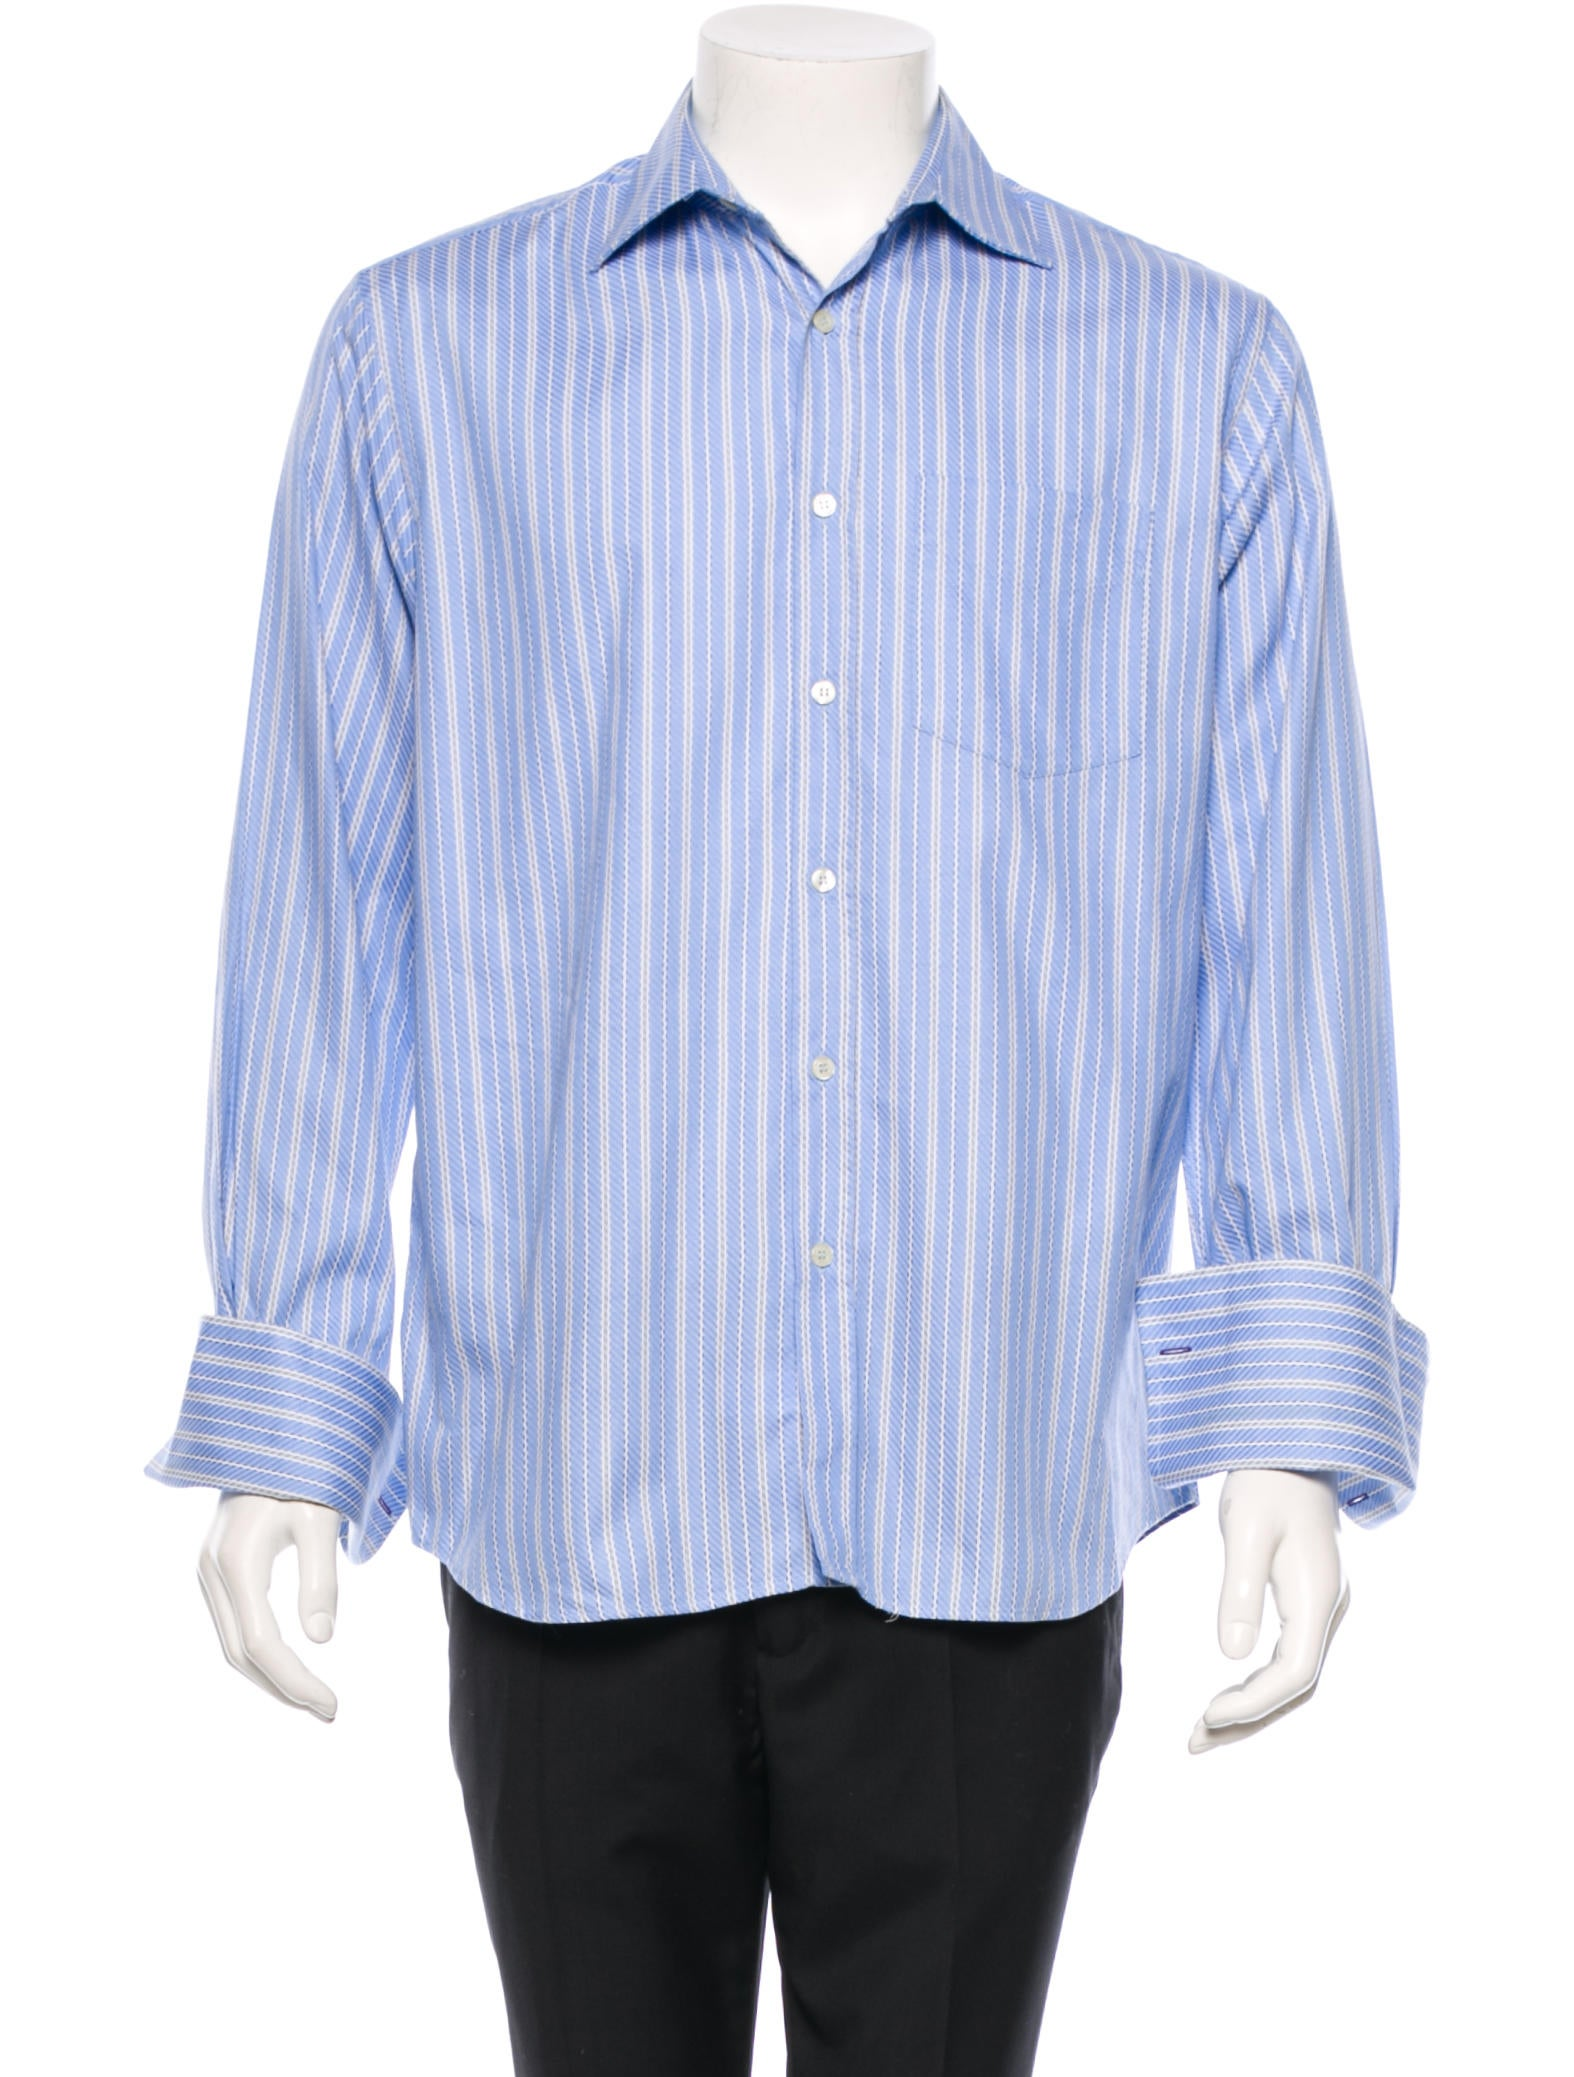 Paul smith striped button up shirt clothing wps20674 for Striped button up shirt mens